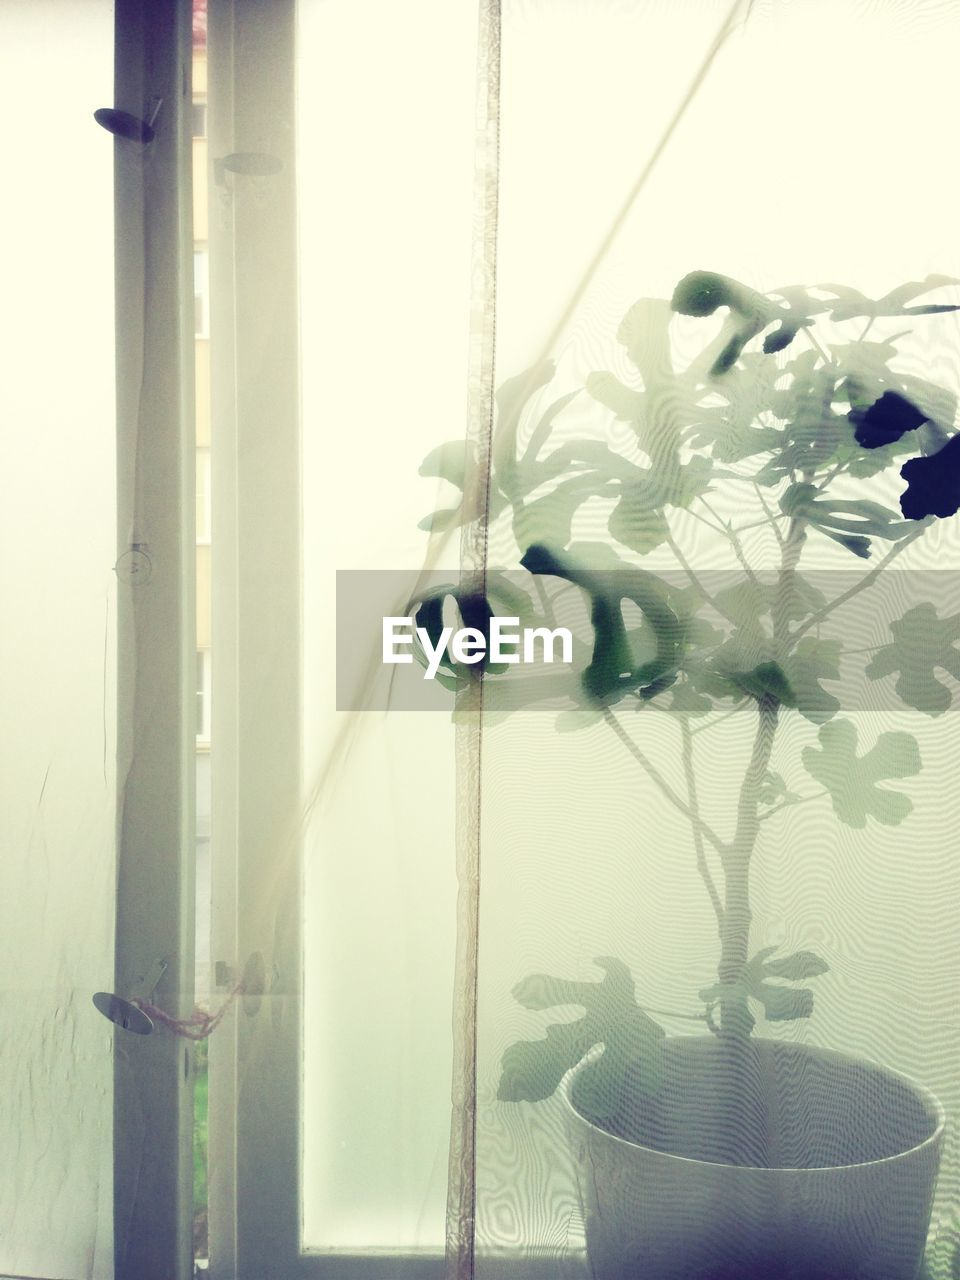 Potted plant viewed through window